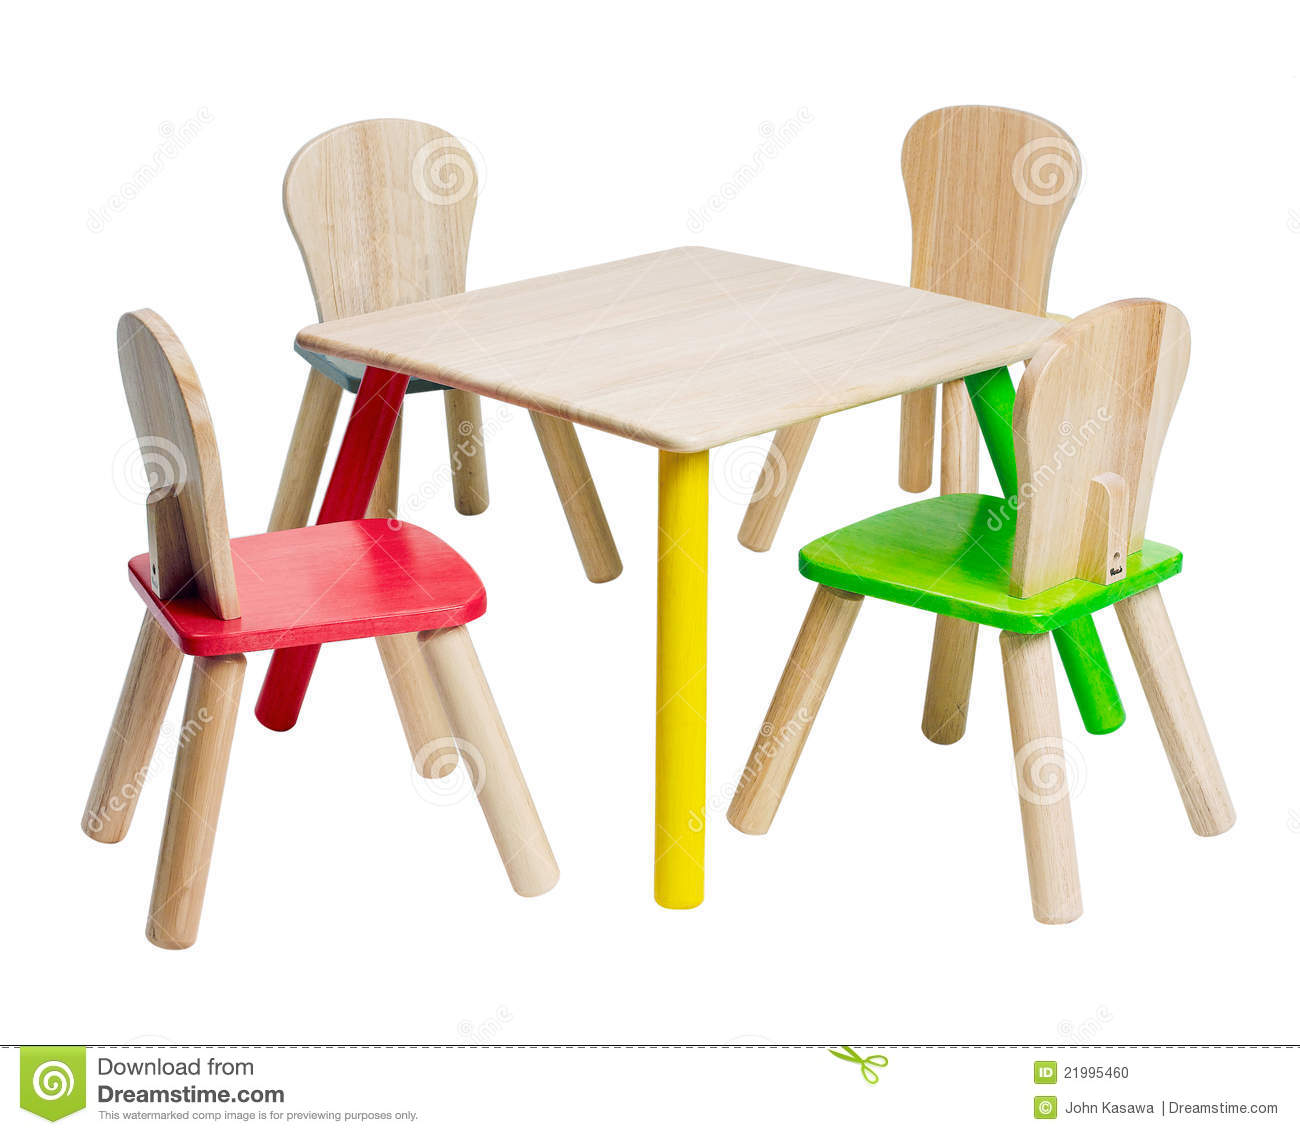 picket desk and chair set for toddlers  sc 1 st  bangkokfoodietour.com & Wooden Table And Chair Set For Toddlers | bangkokfoodietour.com